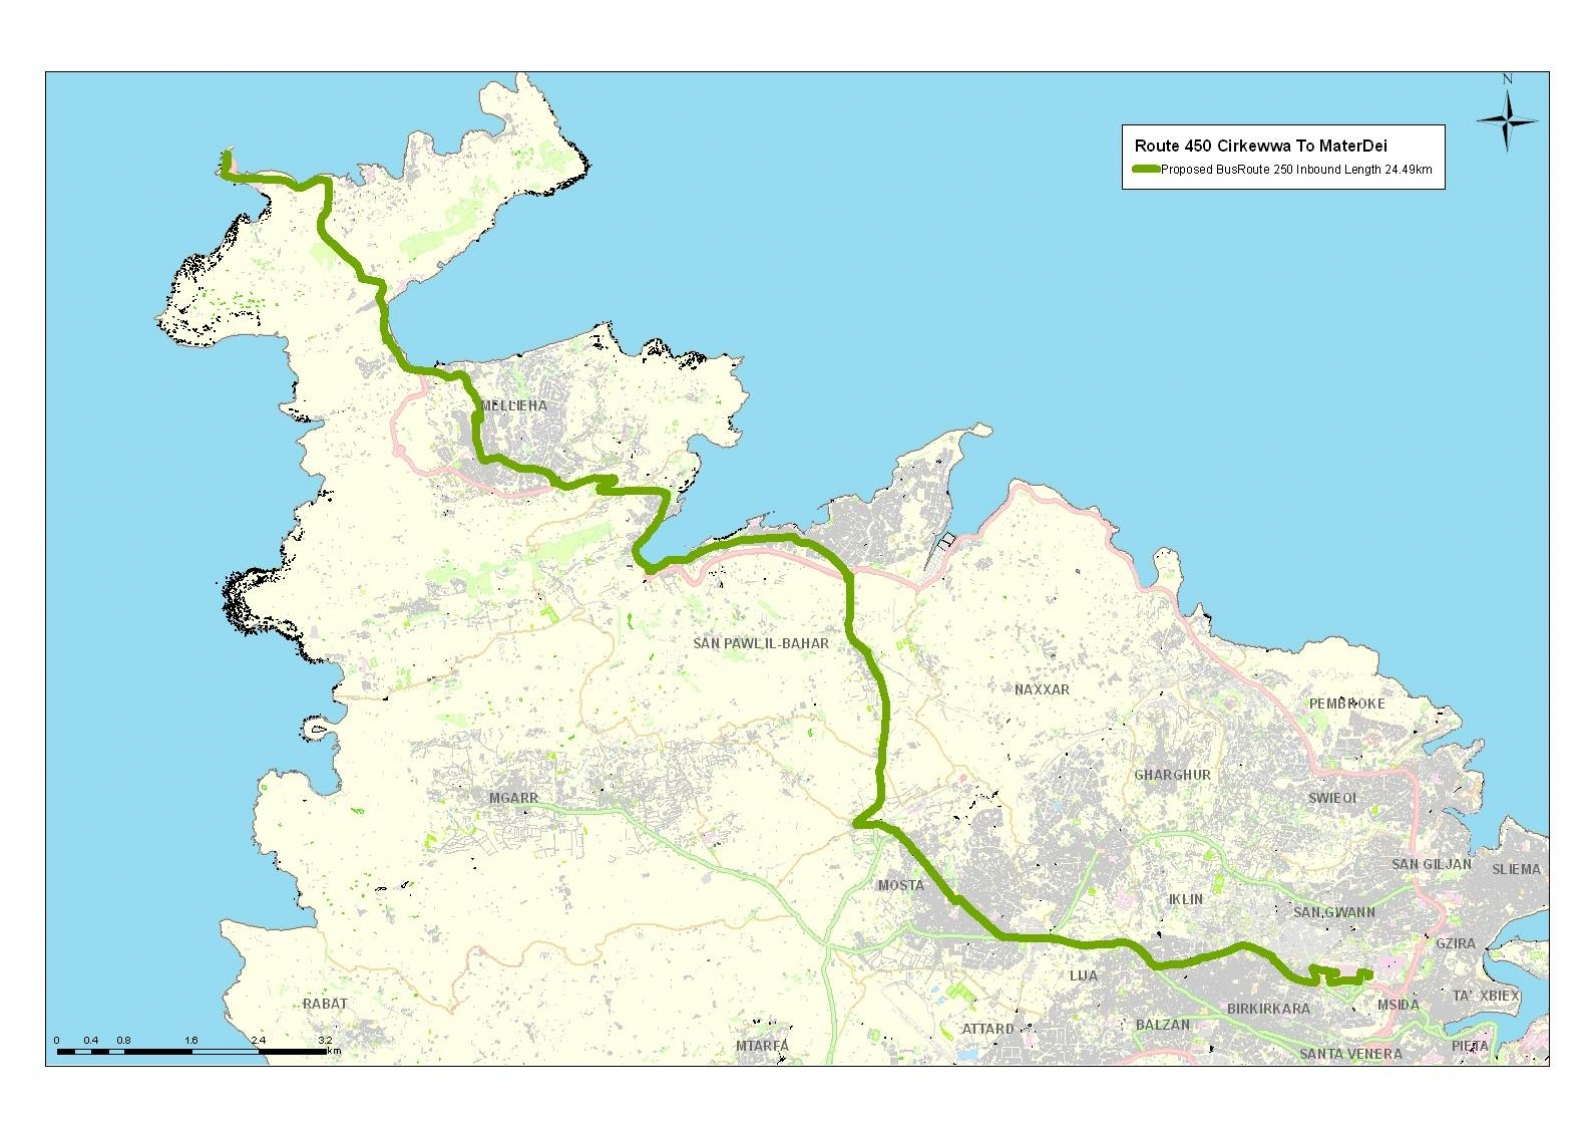 Land-current-network-routes-and-schedules-Cirkewwa-mellieha-sliema-13